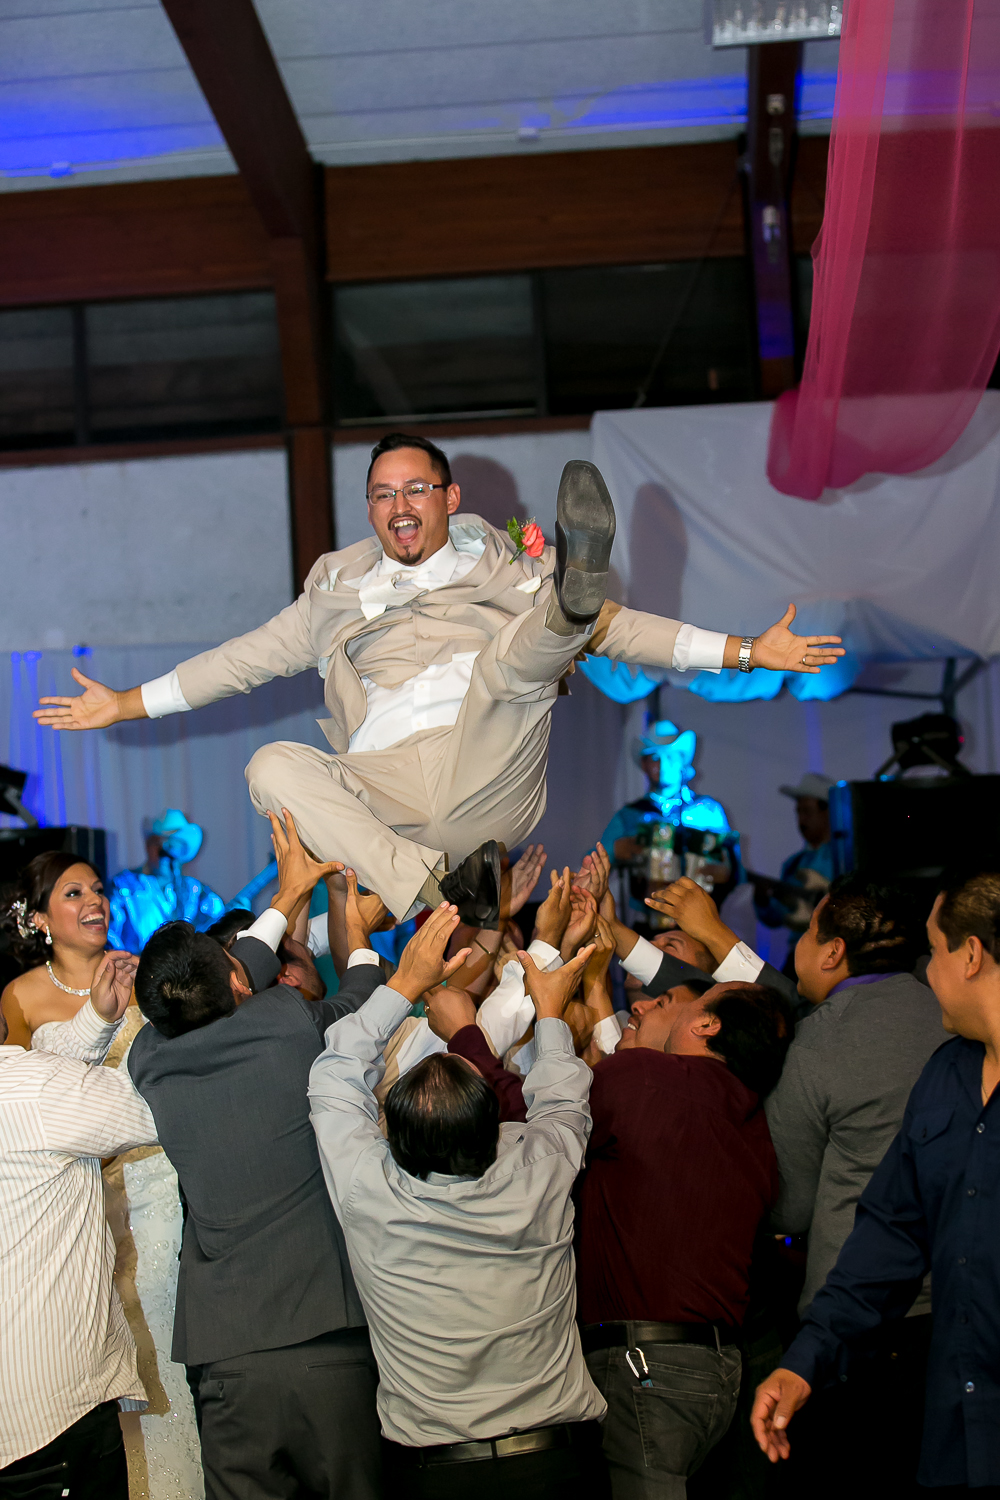 los angeles wedding, love, chris holt photography, happy, mariachi, mexican wedding